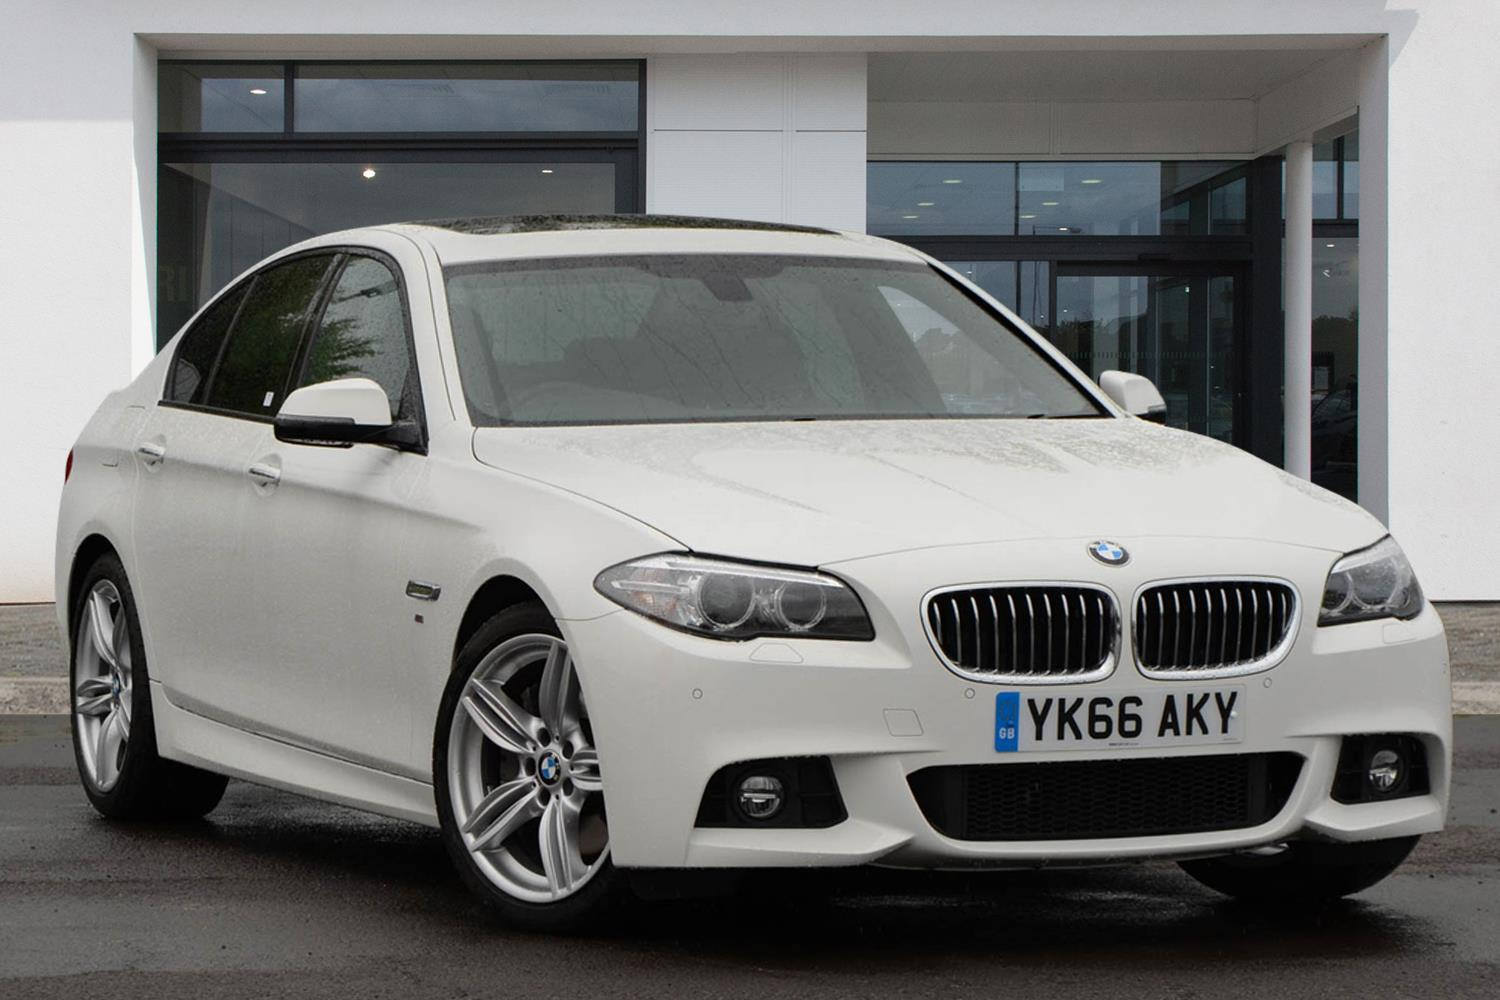 BMW 5 Series Saloon YK66AKY - Image 6